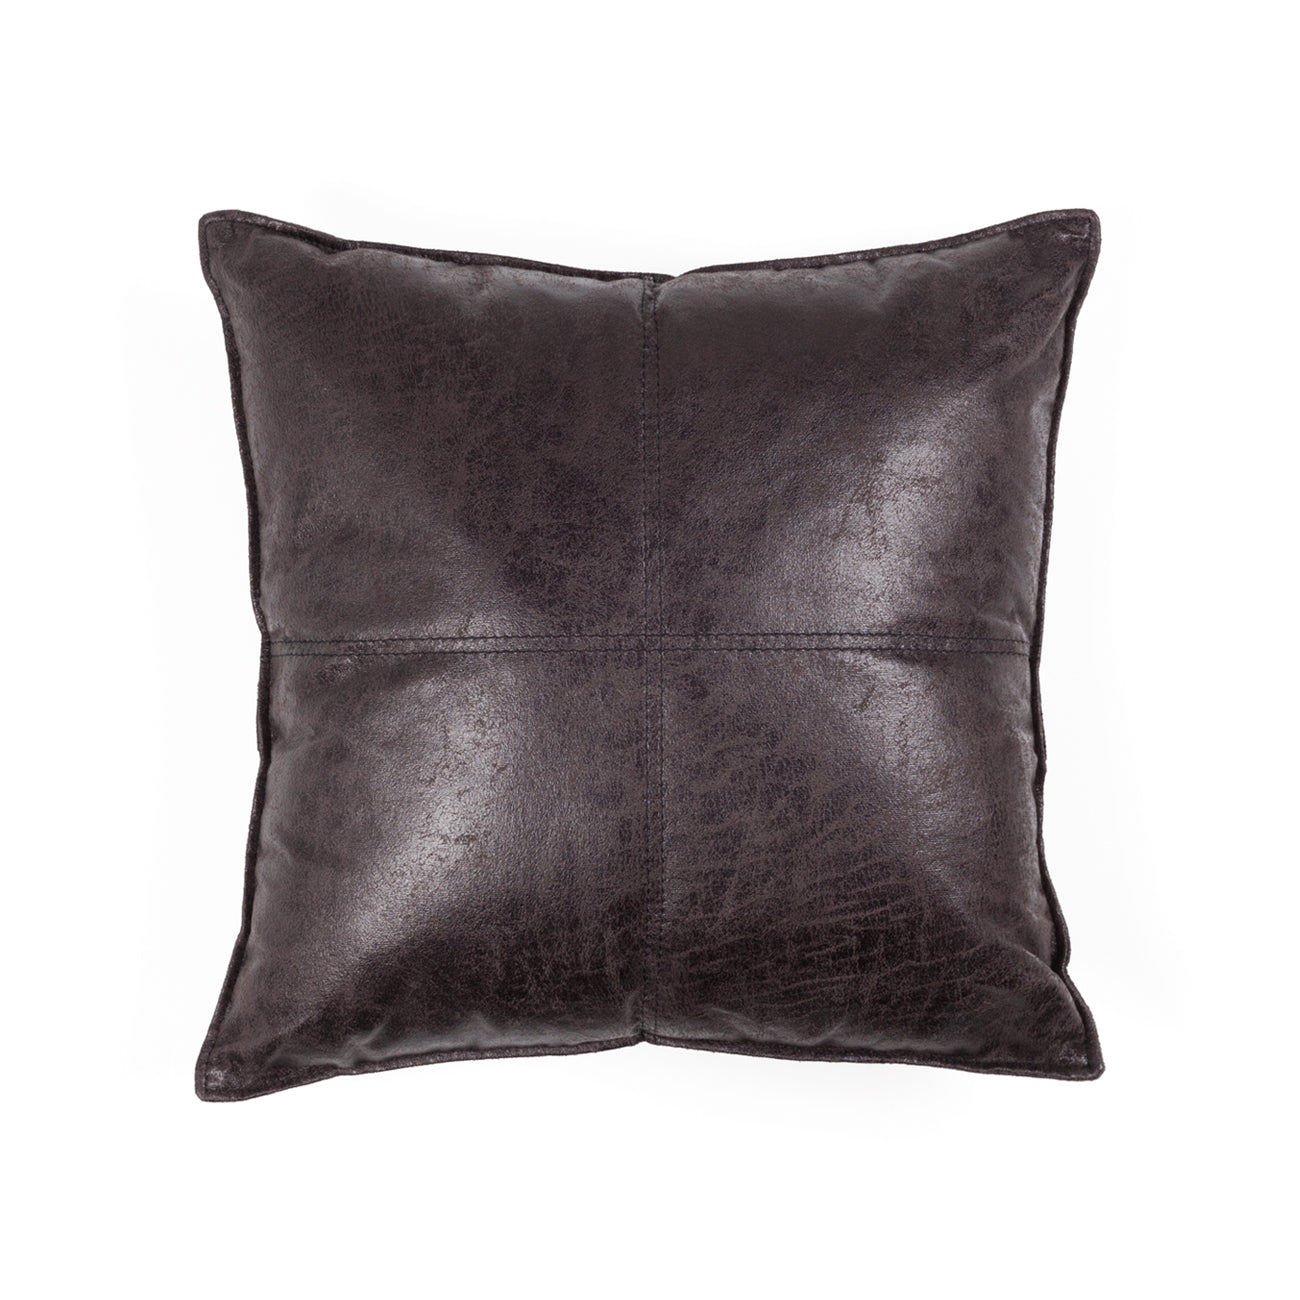 MAVERICK VEGAN LEATHER THROW PILLOW - MOCHA